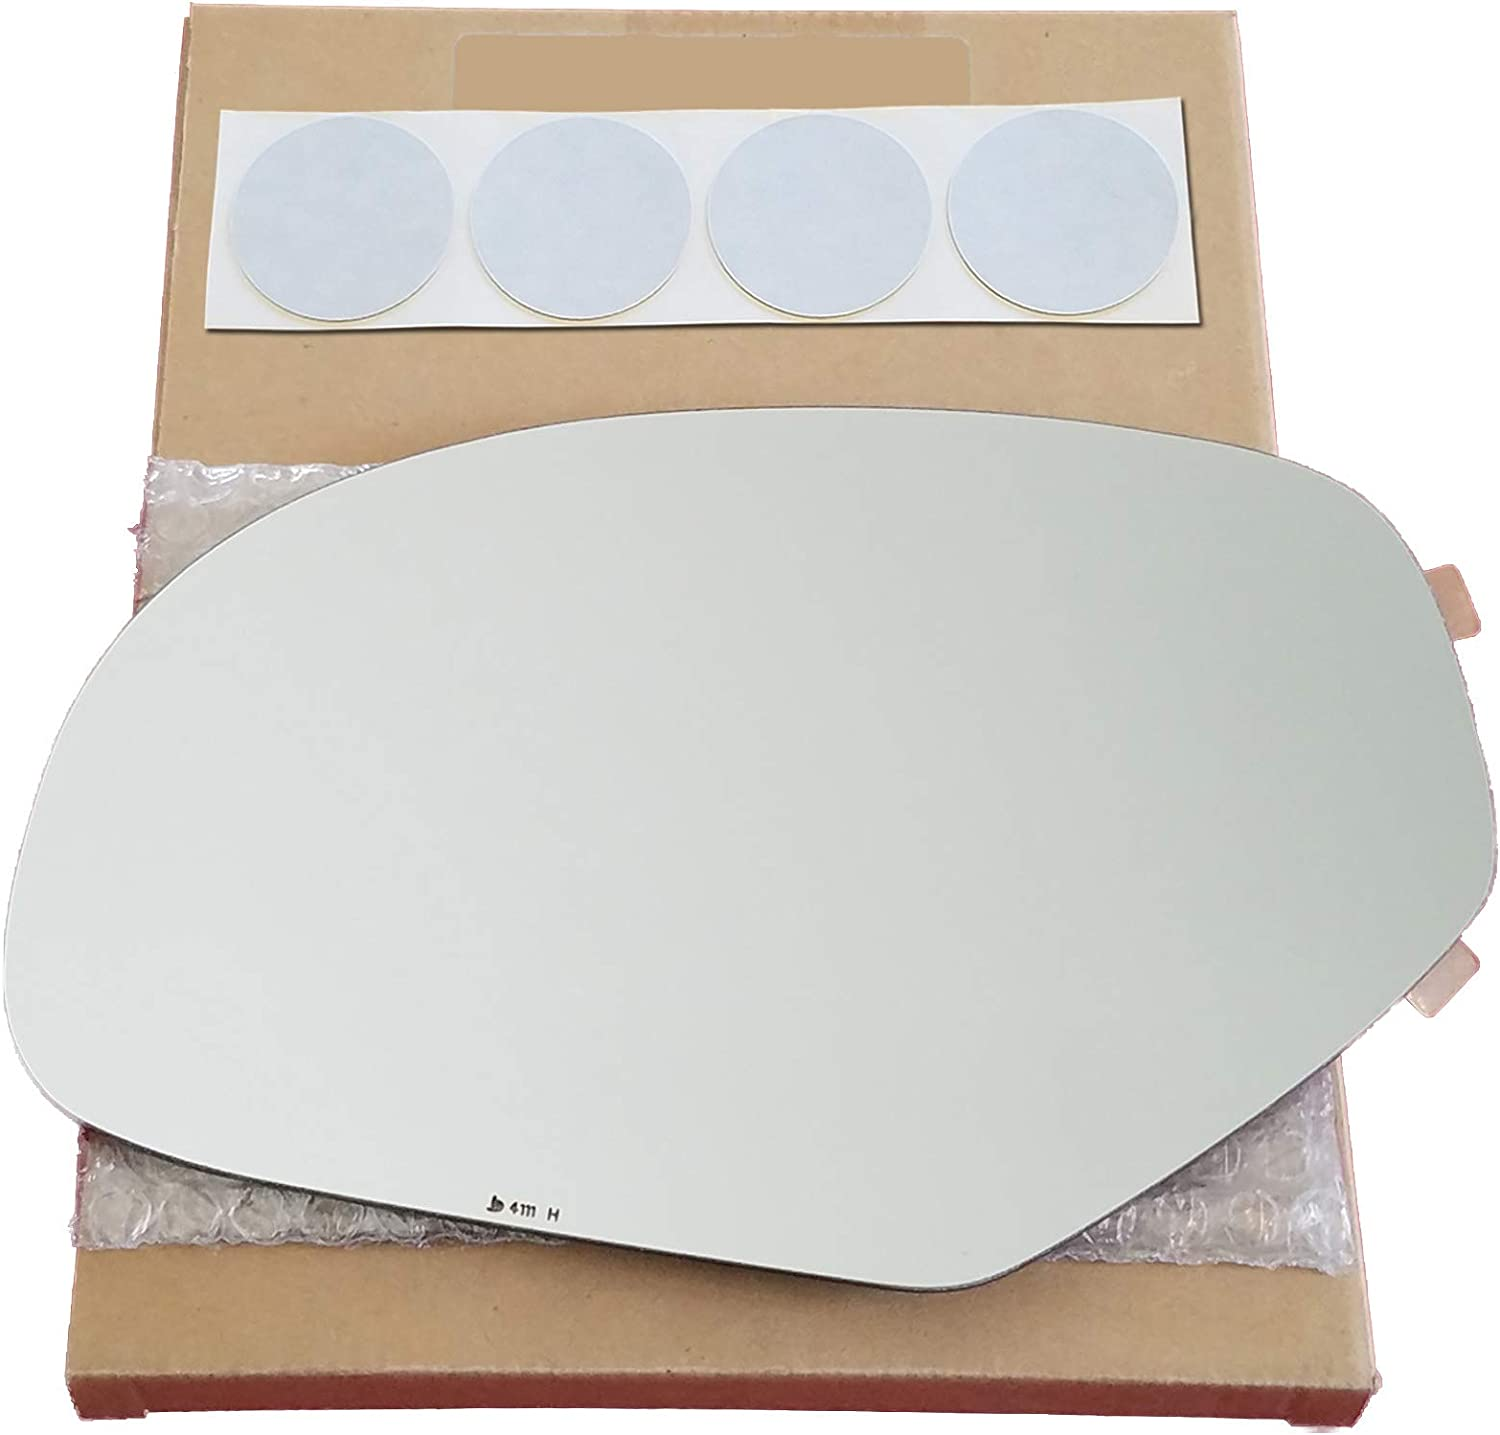 Mirror Nippon regular agency Glass Replacement Many popular brands + Adhesive Pads for Sierr GMC 2007-2013